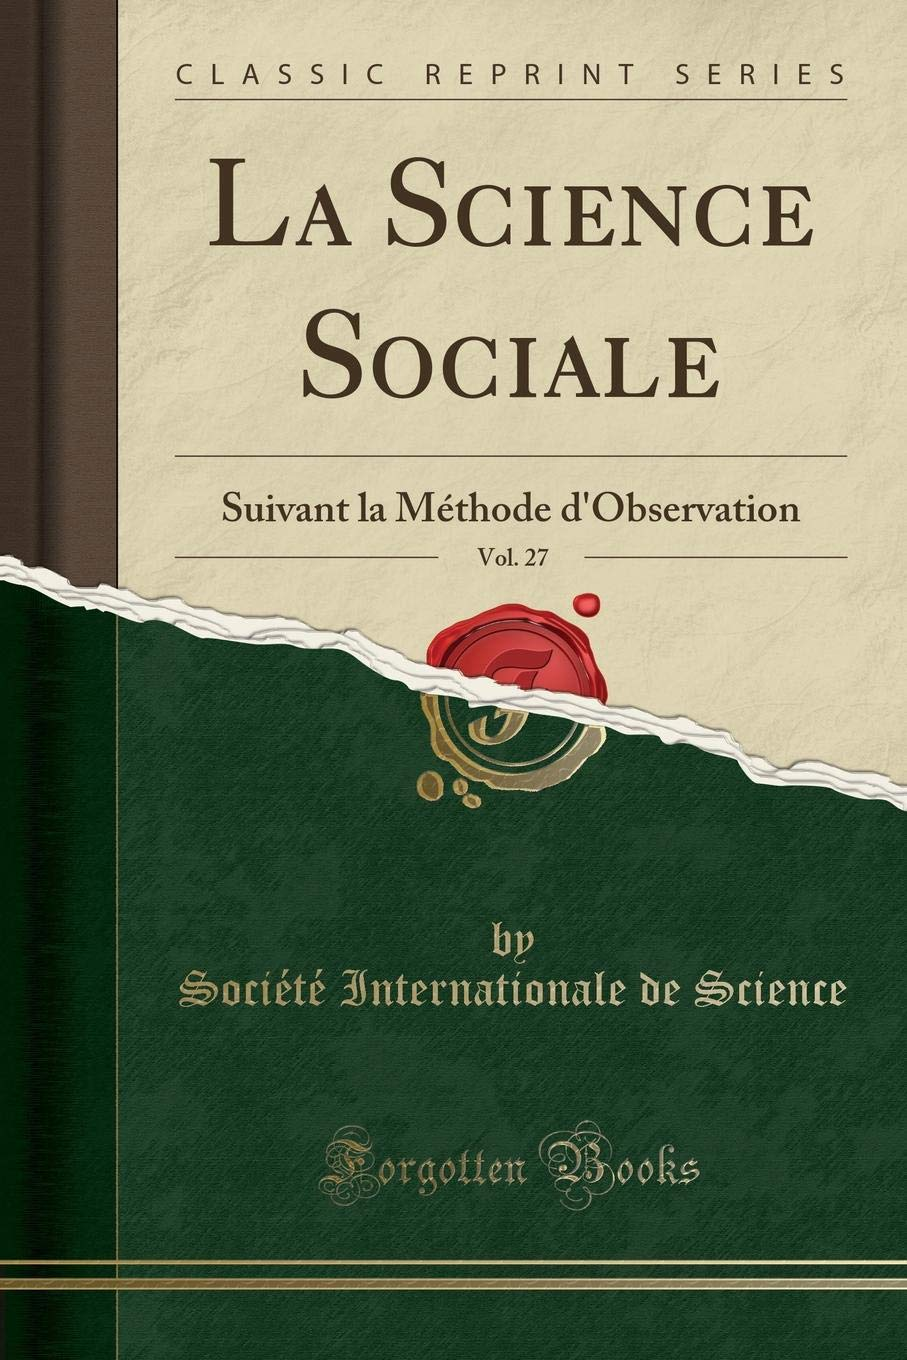 La Science Sociale, Vol. 27: Suivant la Méthode d'Observation (Classic Reprint) (French Edition) pdf